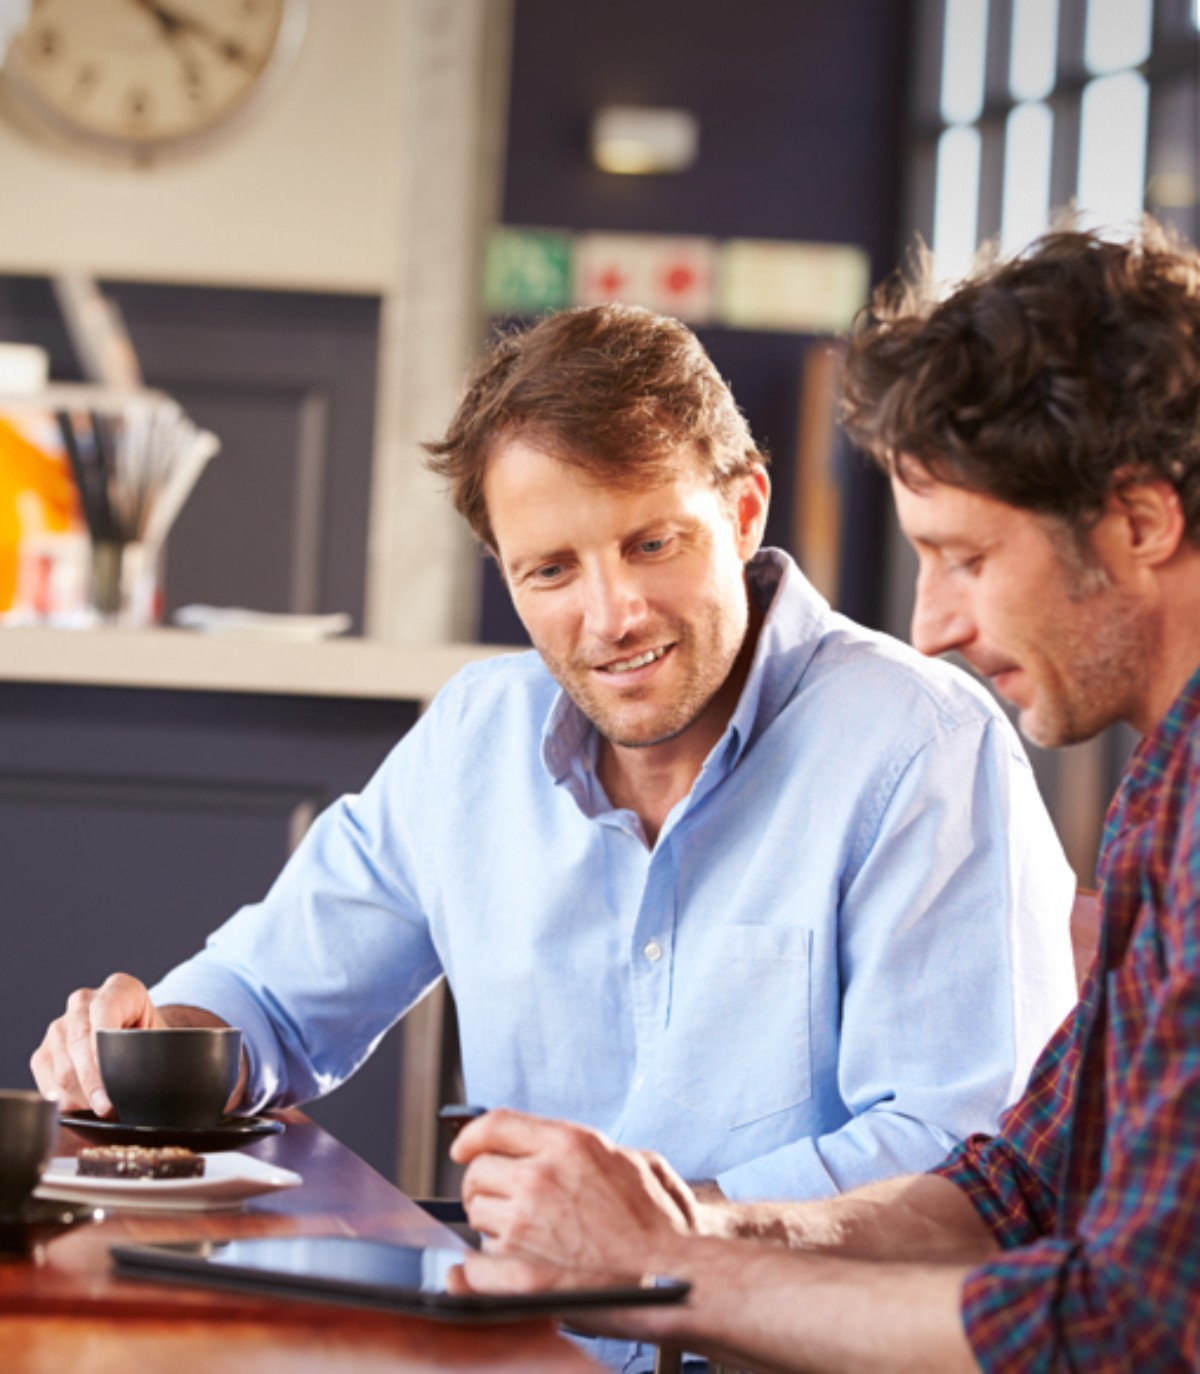 Two men working together in a coffee shop